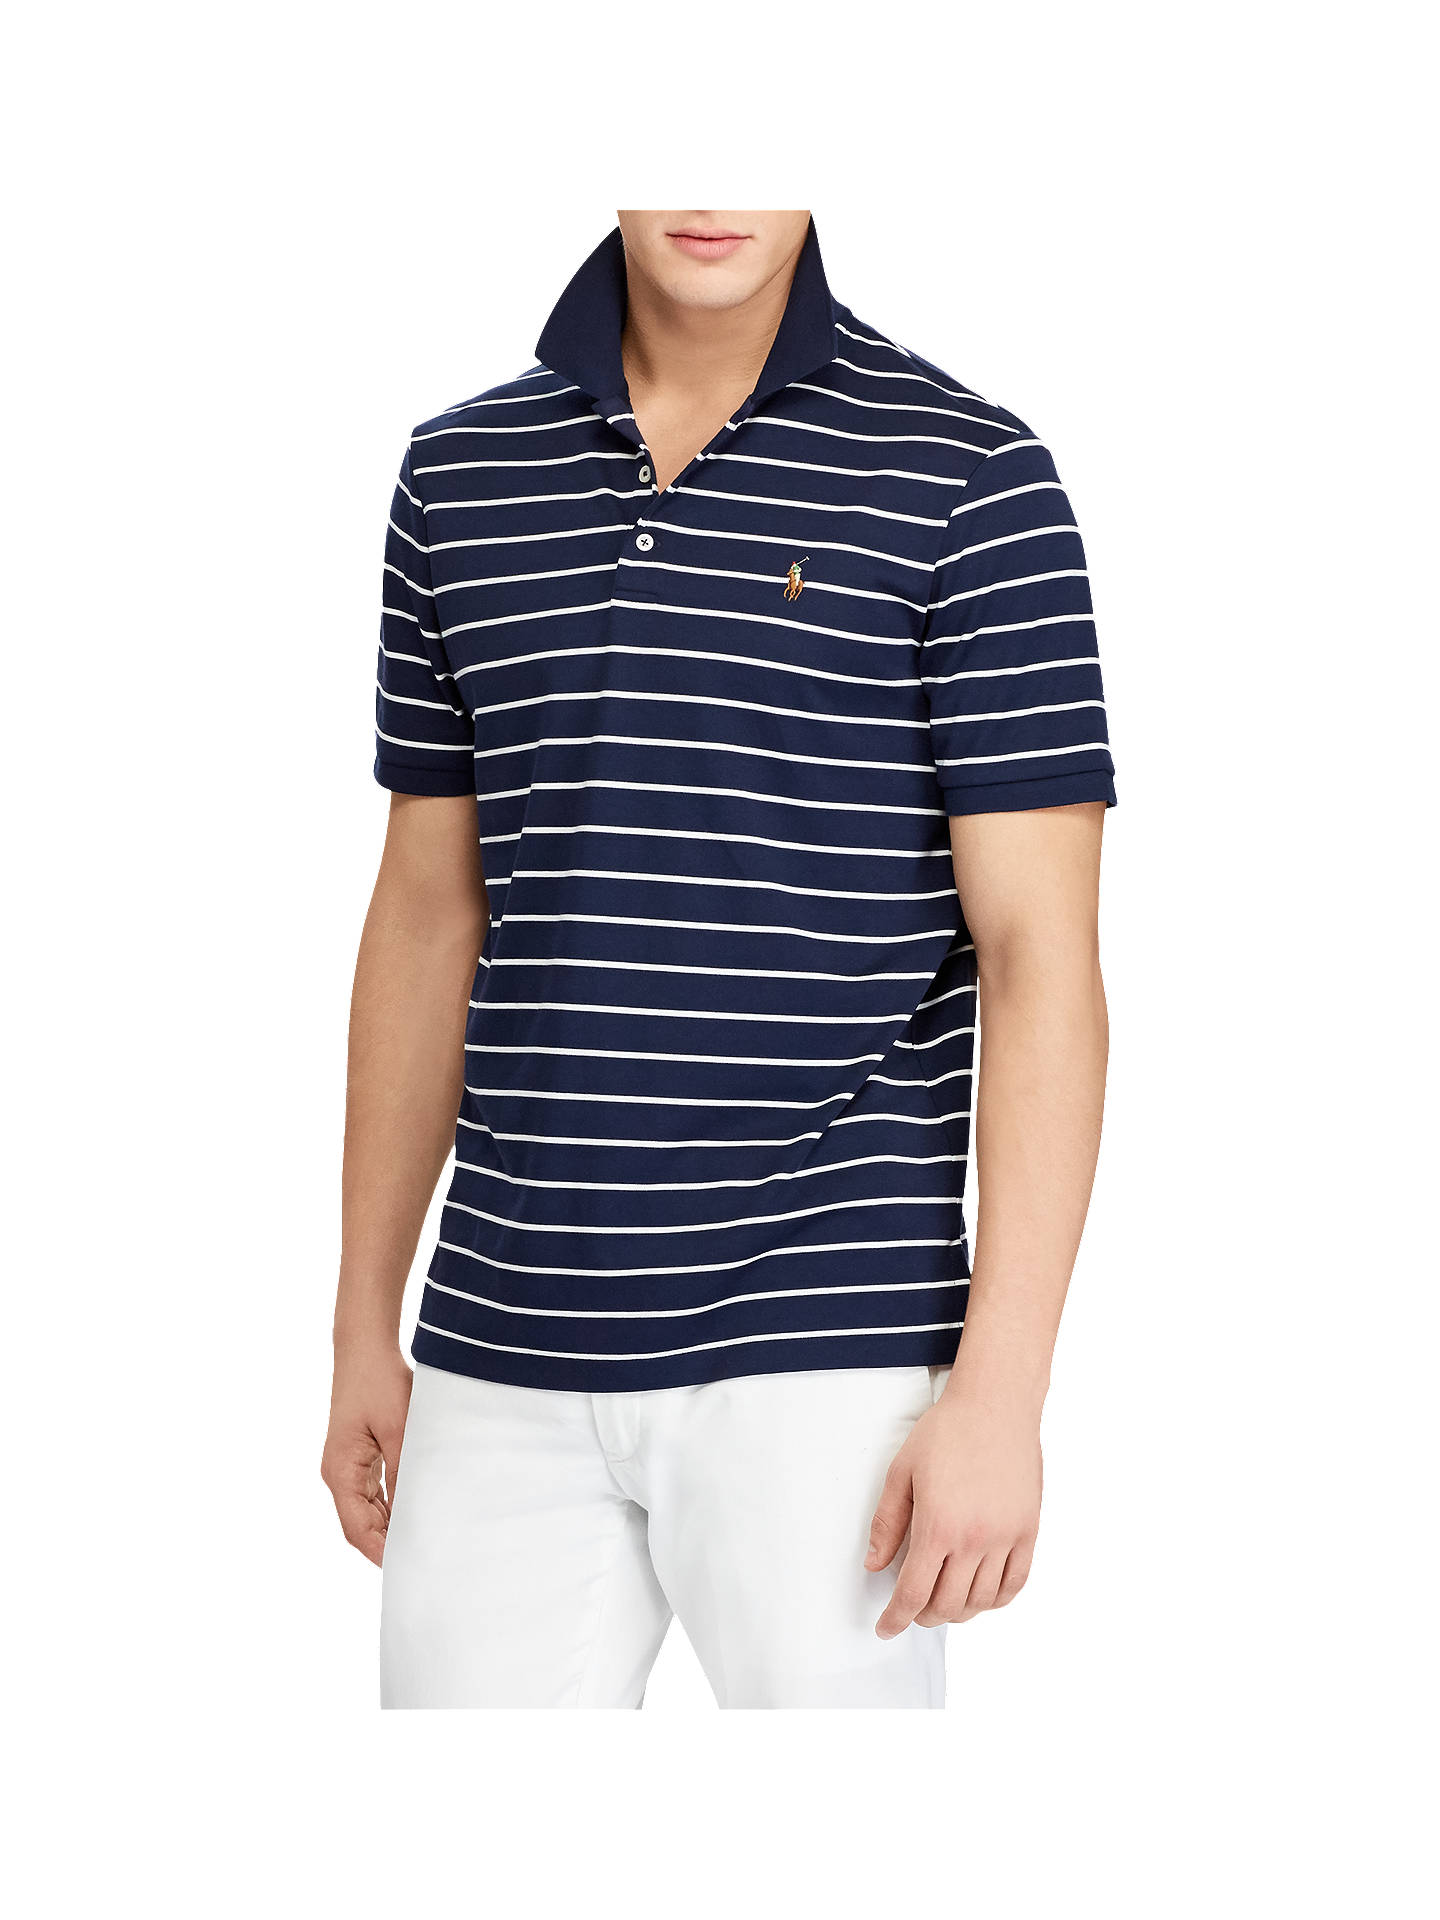 Polo Ralph Lauren Slim Fit Polo Top French Navywhite At John Lewis